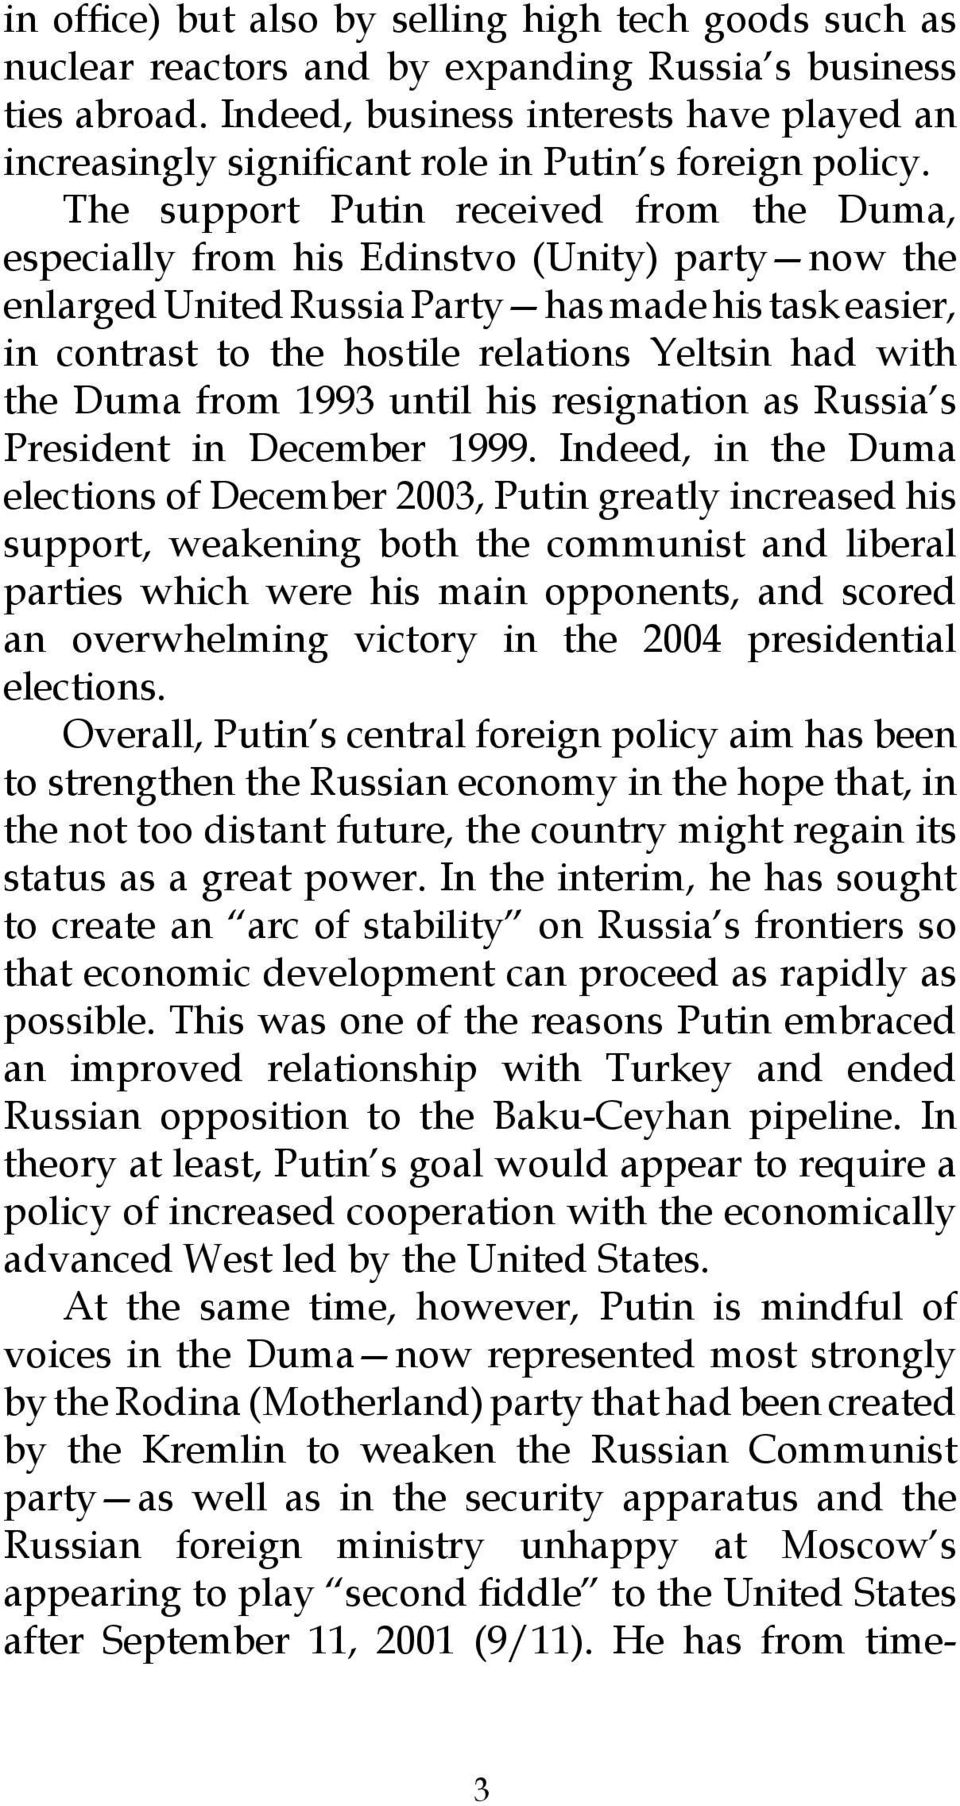 The support Putin received from the Duma, especially from his Edinstvo (Unity) party now the enlarged United Russia Party has made his task easier, in contrast to the hostile relations Yeltsin had